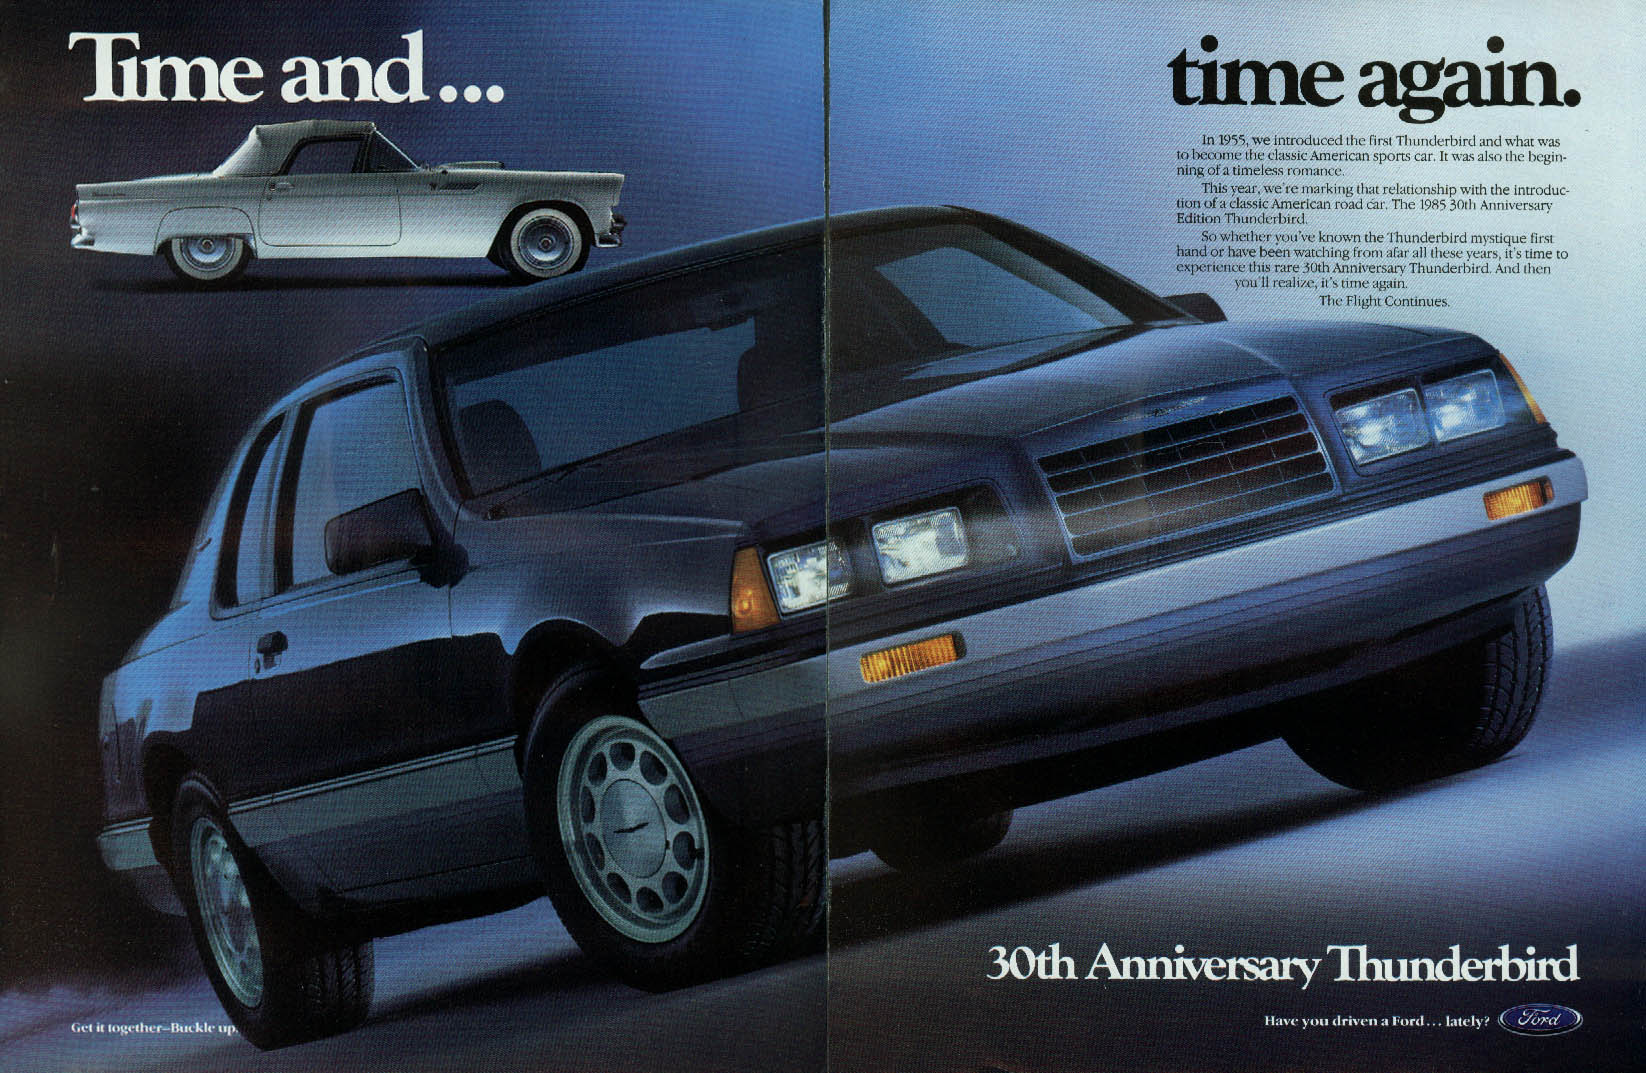 Image for Time and time again. Ford Thunderbird 1955 & 1985 ad